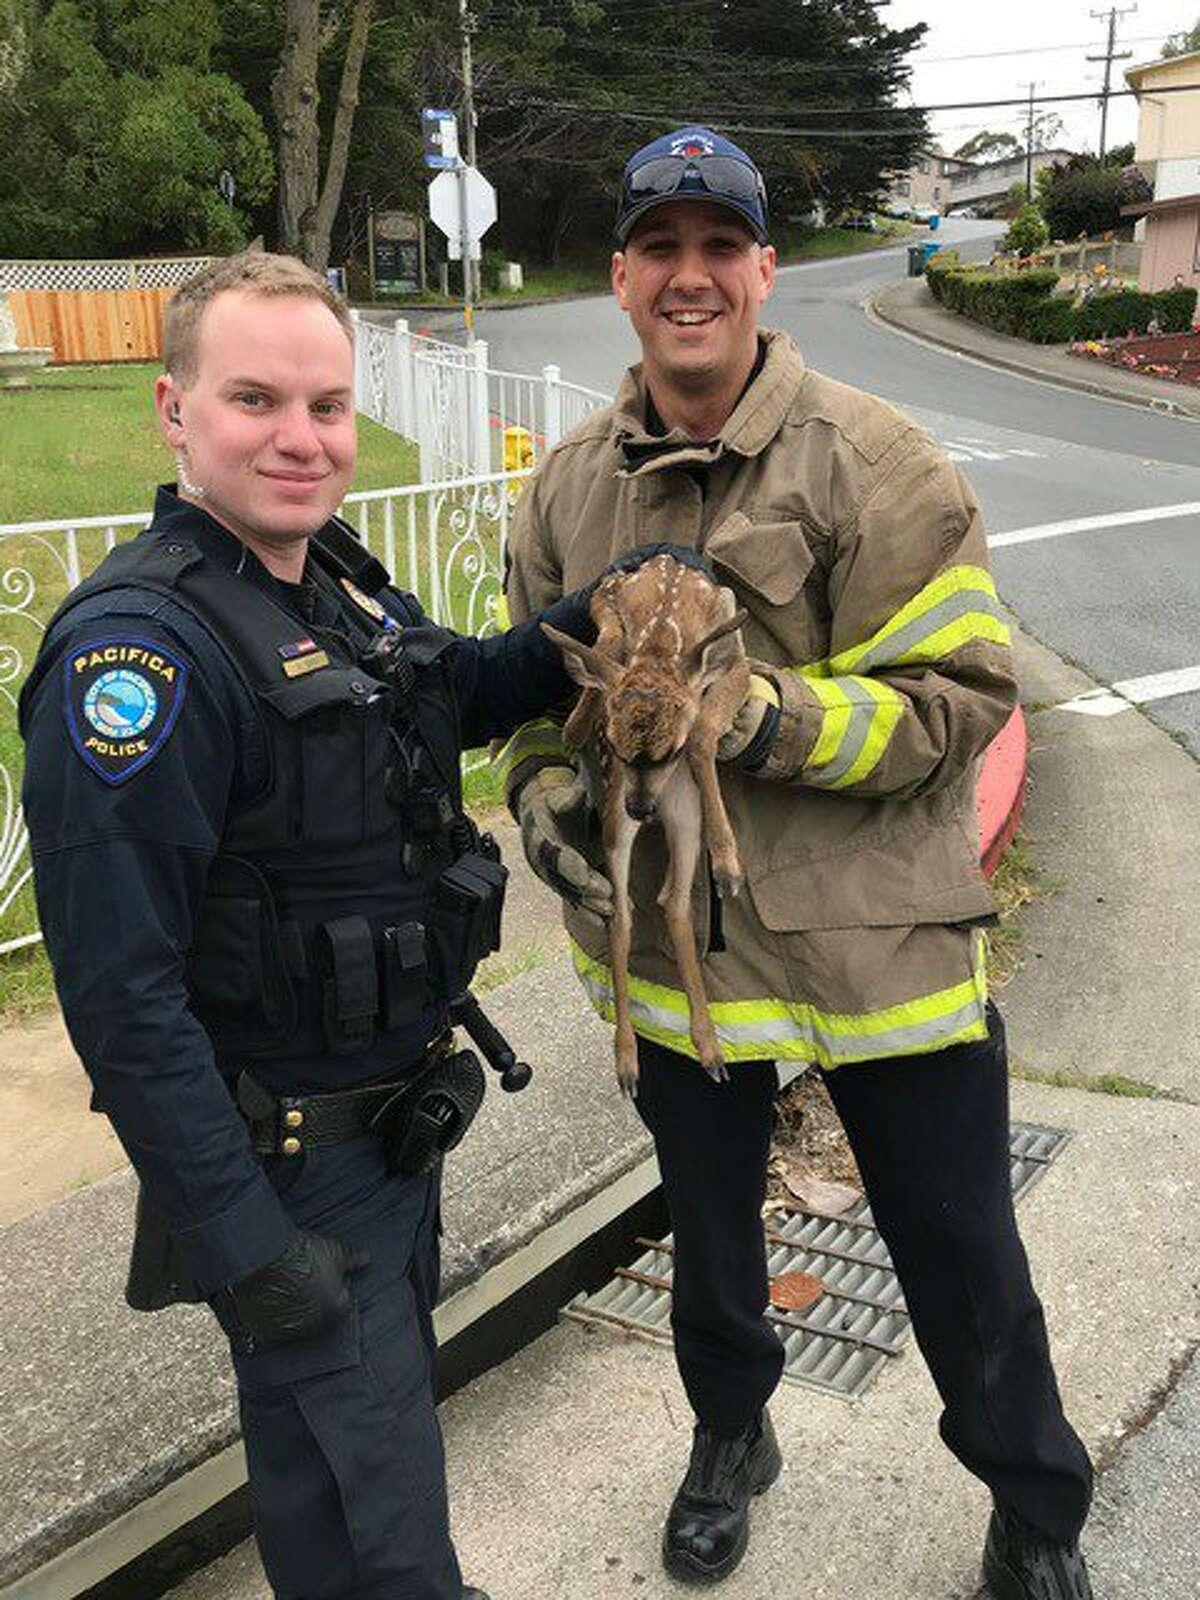 North County Fire Authority rescued a tiny fawn in Pacifica after it fell into a storm drain on Wednesday, May 8, 2019.